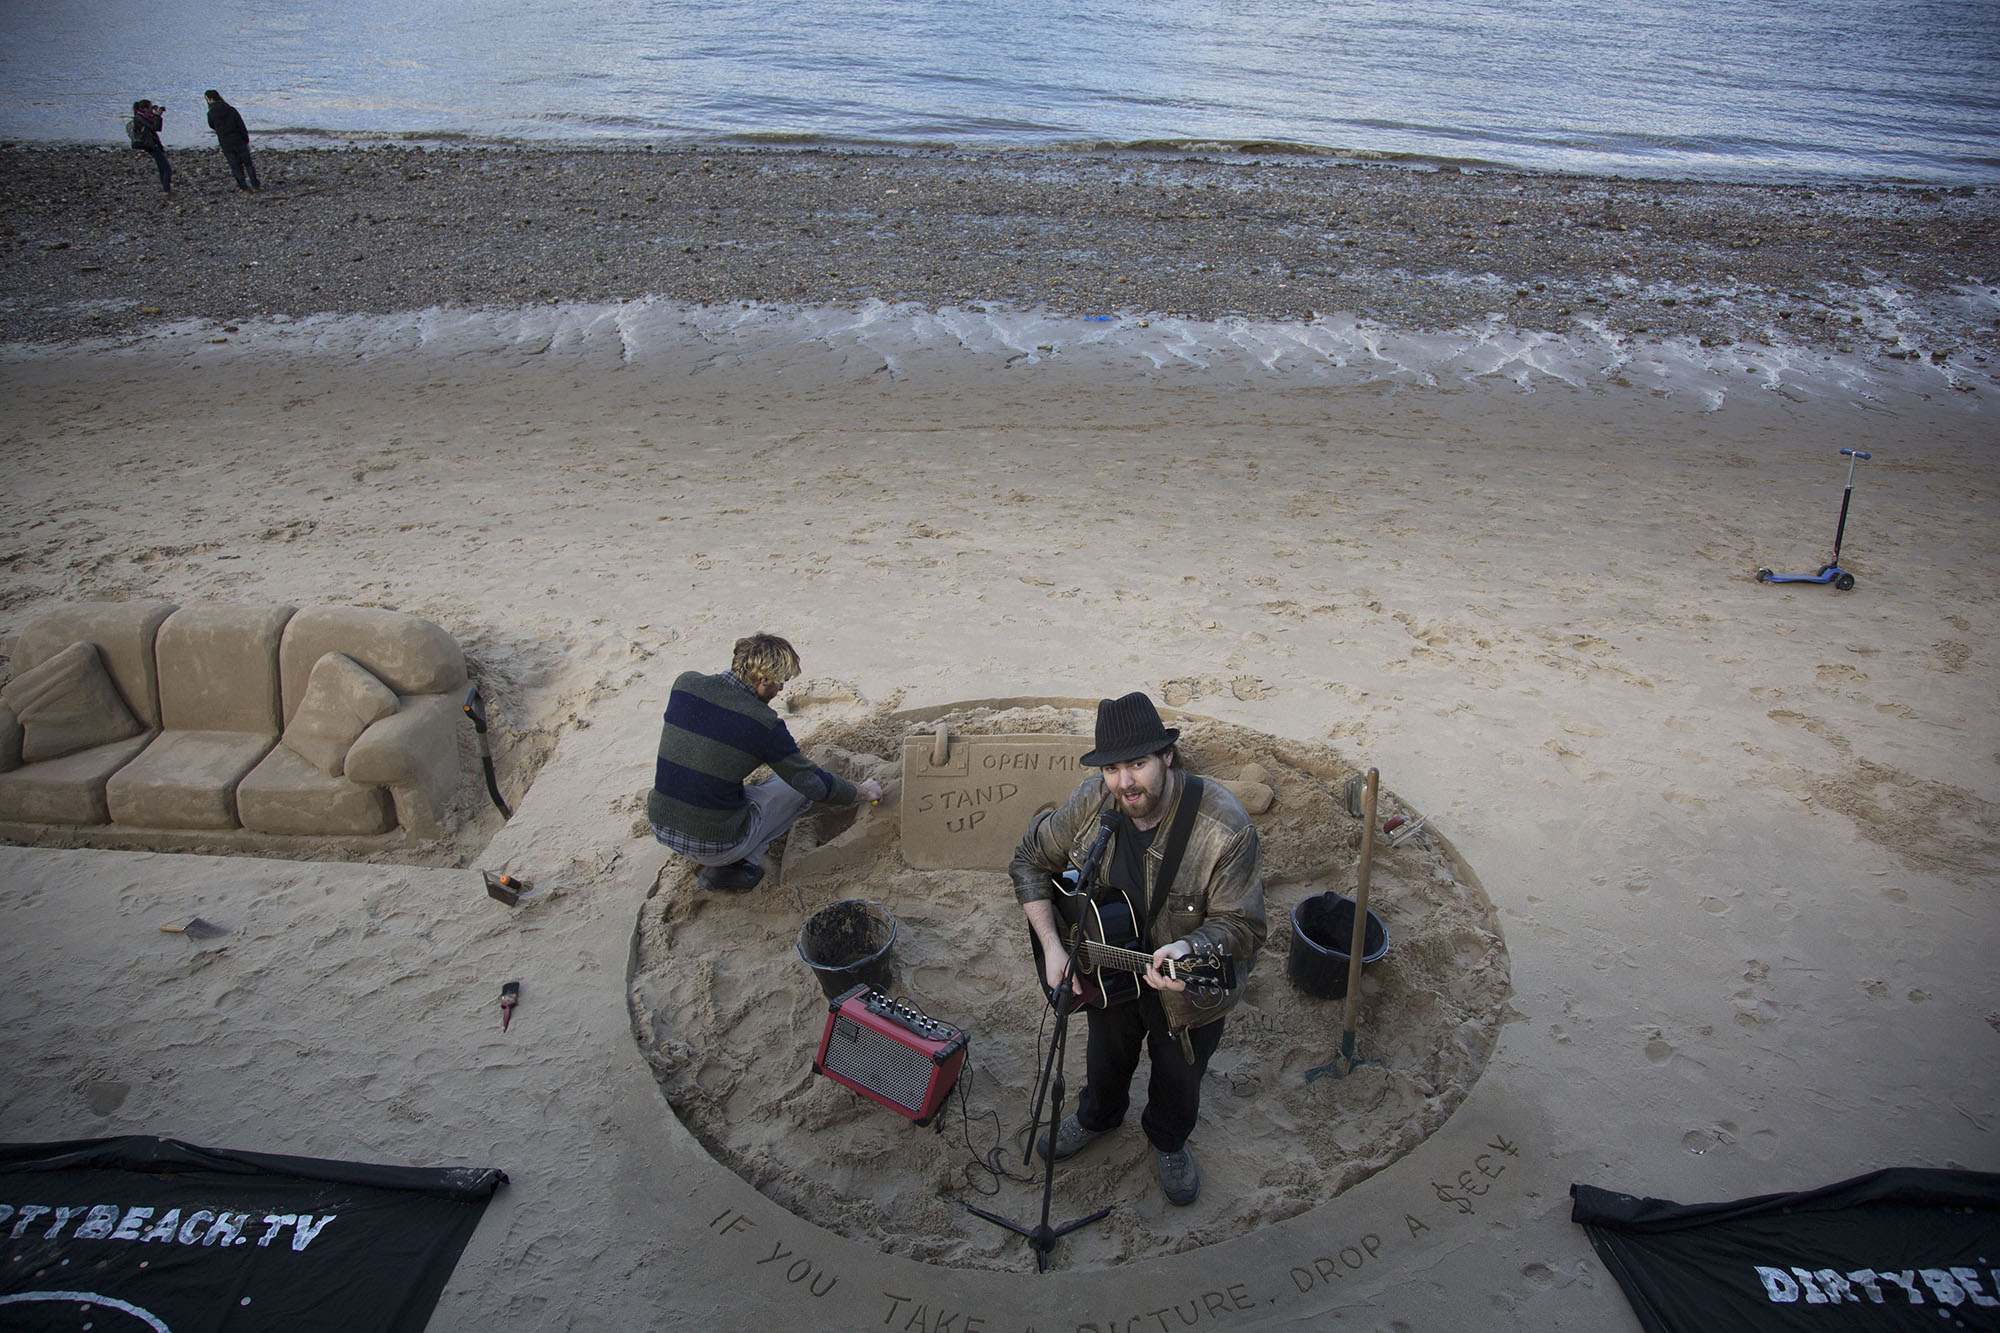 Busker performs amusing songs on the beach of the River Thames.